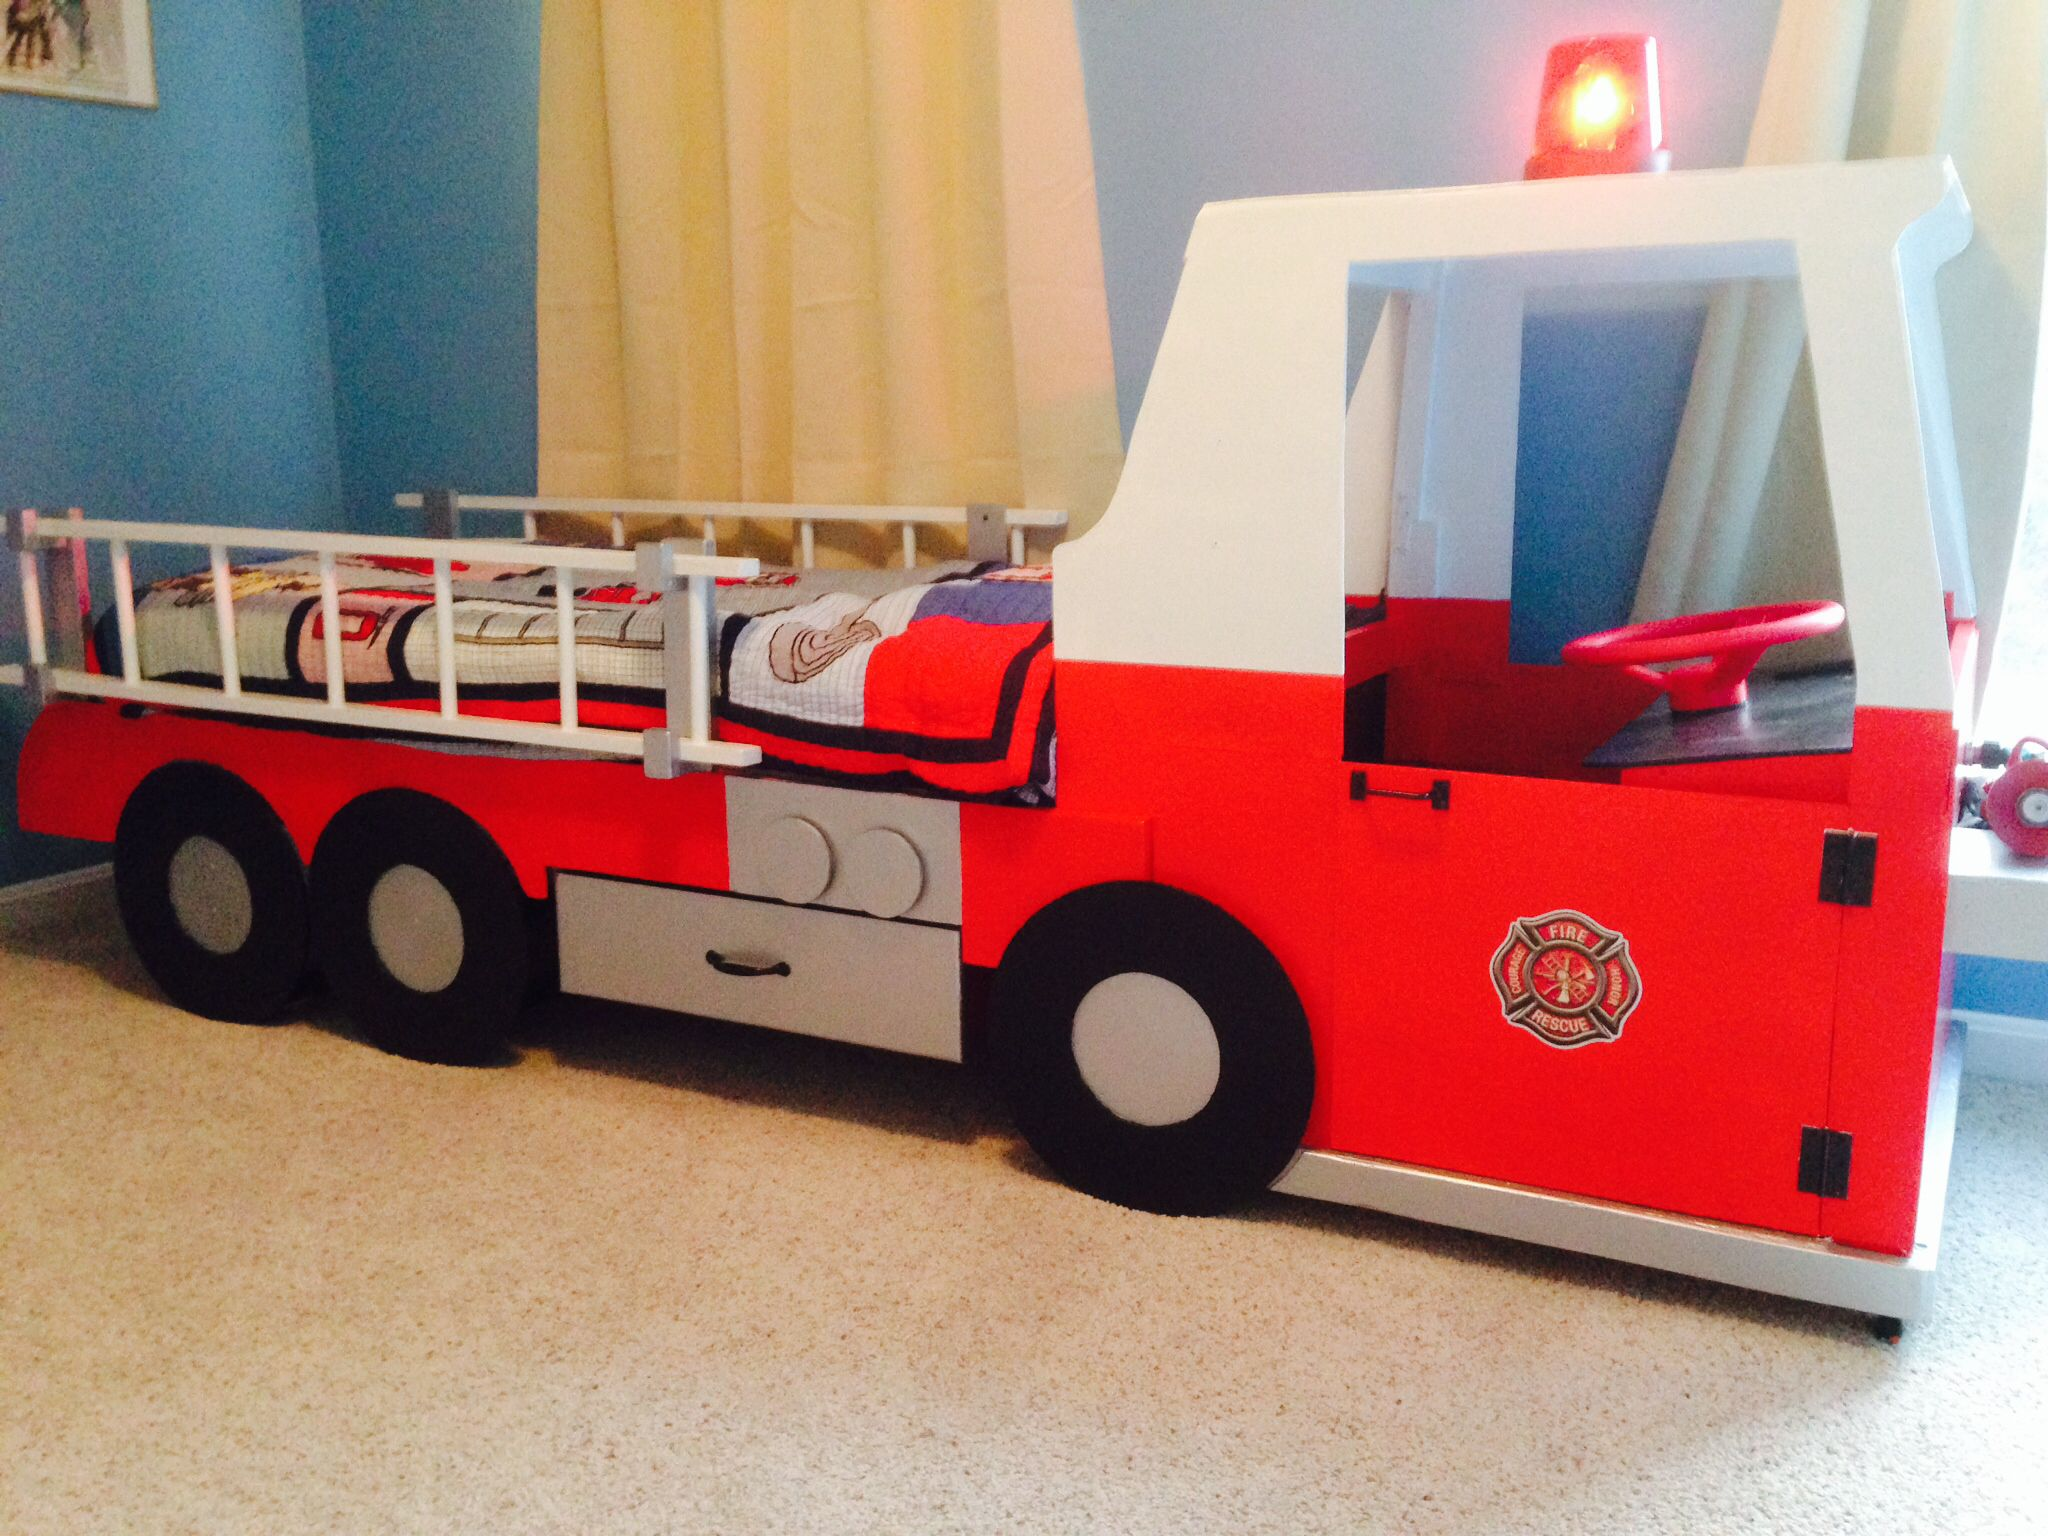 Fire Truck Bed For A Toddler My Husband Made This For Our 3 Year Old Steering Wheel And Working Siren Ligh Firetruck Bed Truck Toddler Bed Fire Truck Bedroom